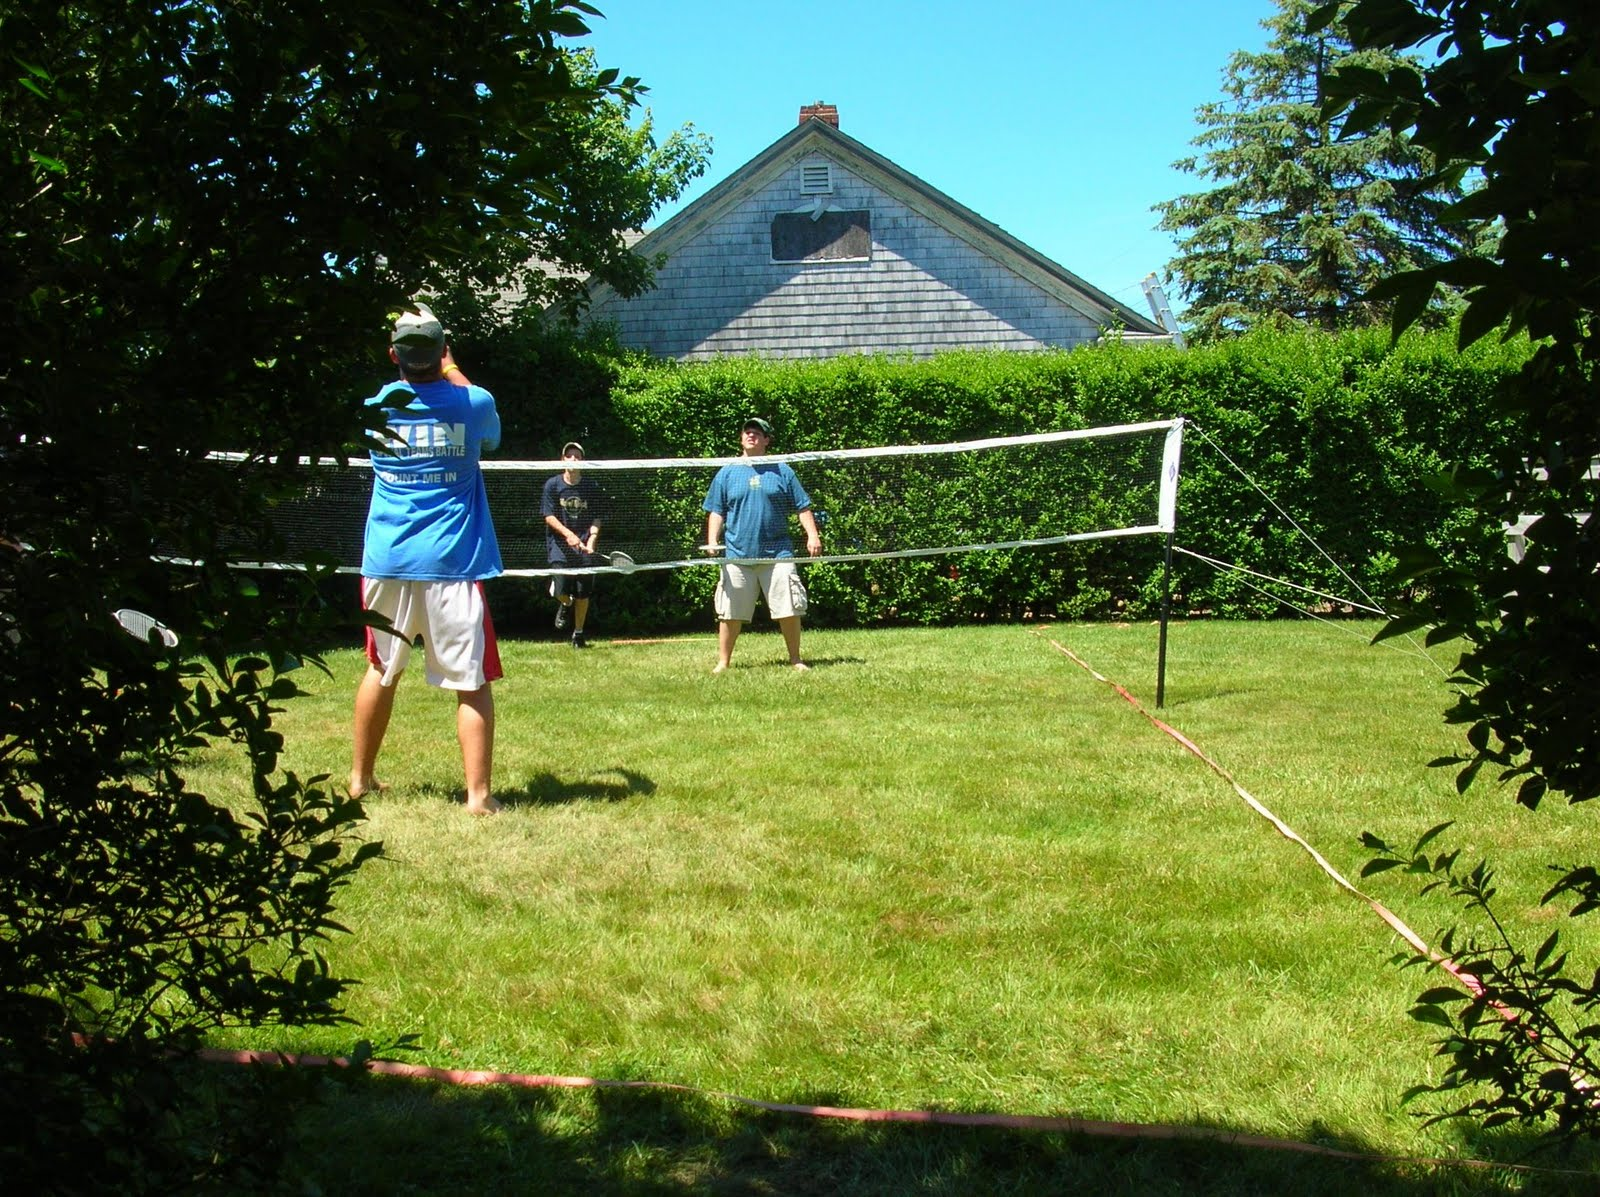 my pennies badminton badminton is regarded as a backyard game and people lie blissfully unaware of the depth of the seemingly simple game that they indulge in on lazy